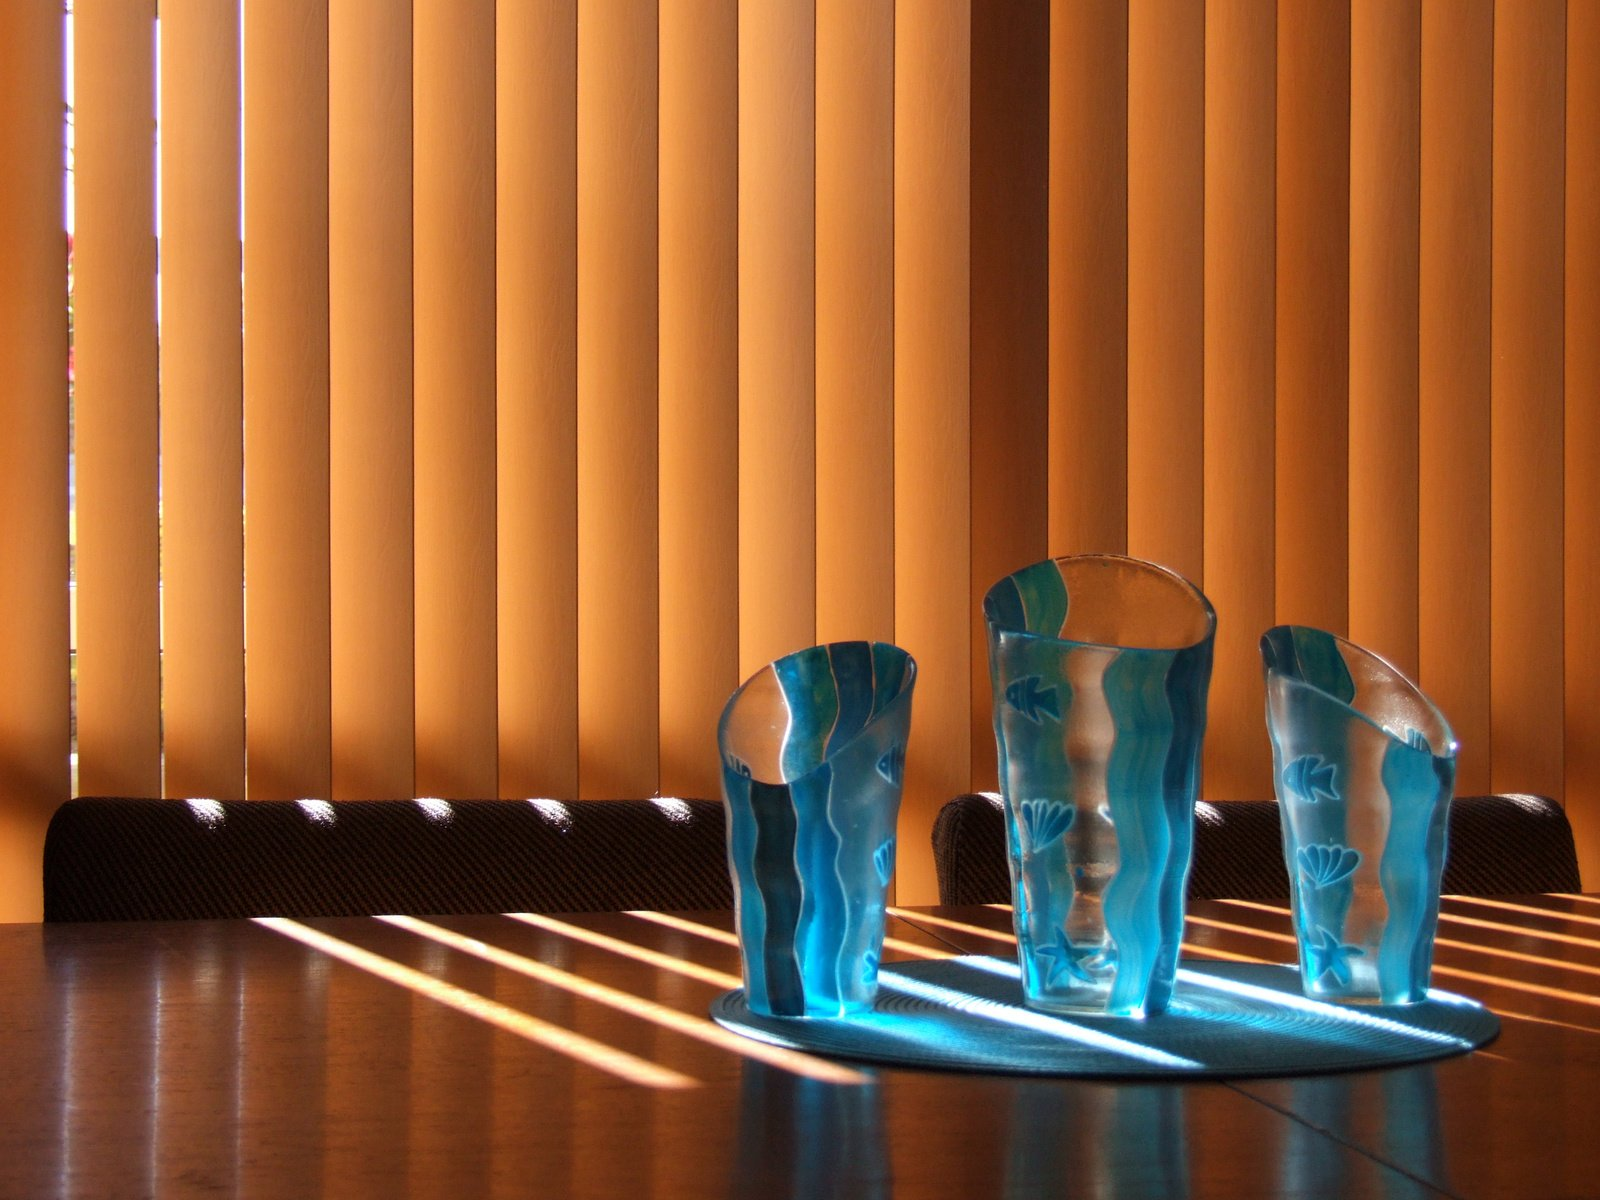 Sun peeping through vertical blinds in a dining area